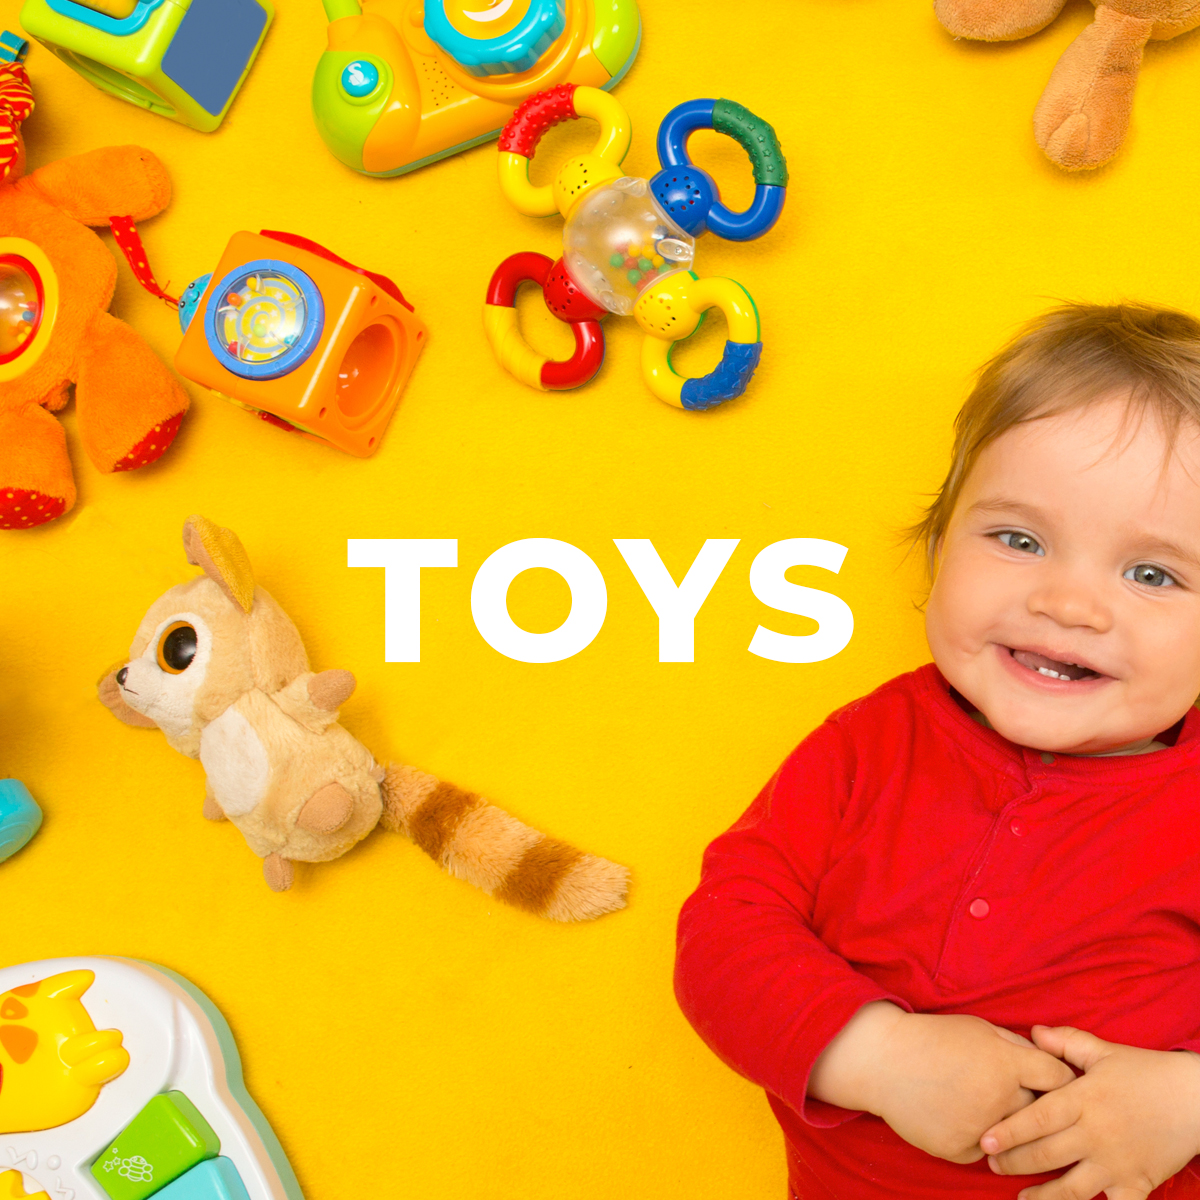 product-guide-toys-category-header.jpg